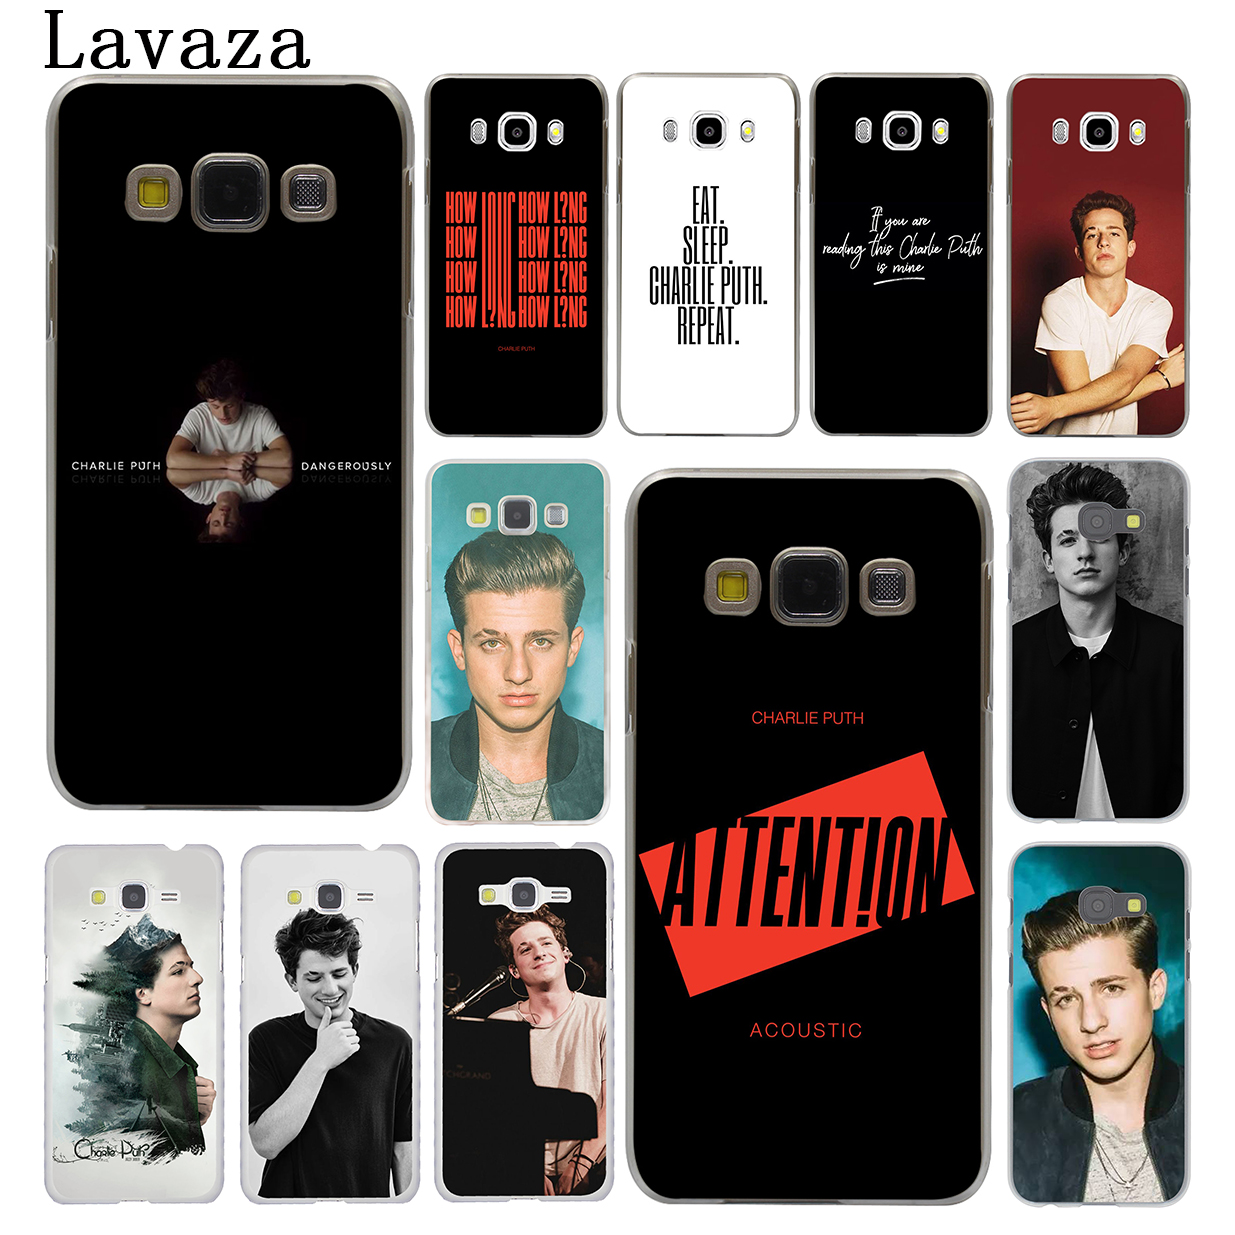 US $1 92 26% OFF|Lavaza charlie puth attention Collage Hard Phone Case for  Samsung Galaxy J6 J7 J1 J2 J3 J5 2015 2016 2017 Prime Cover Cases-in